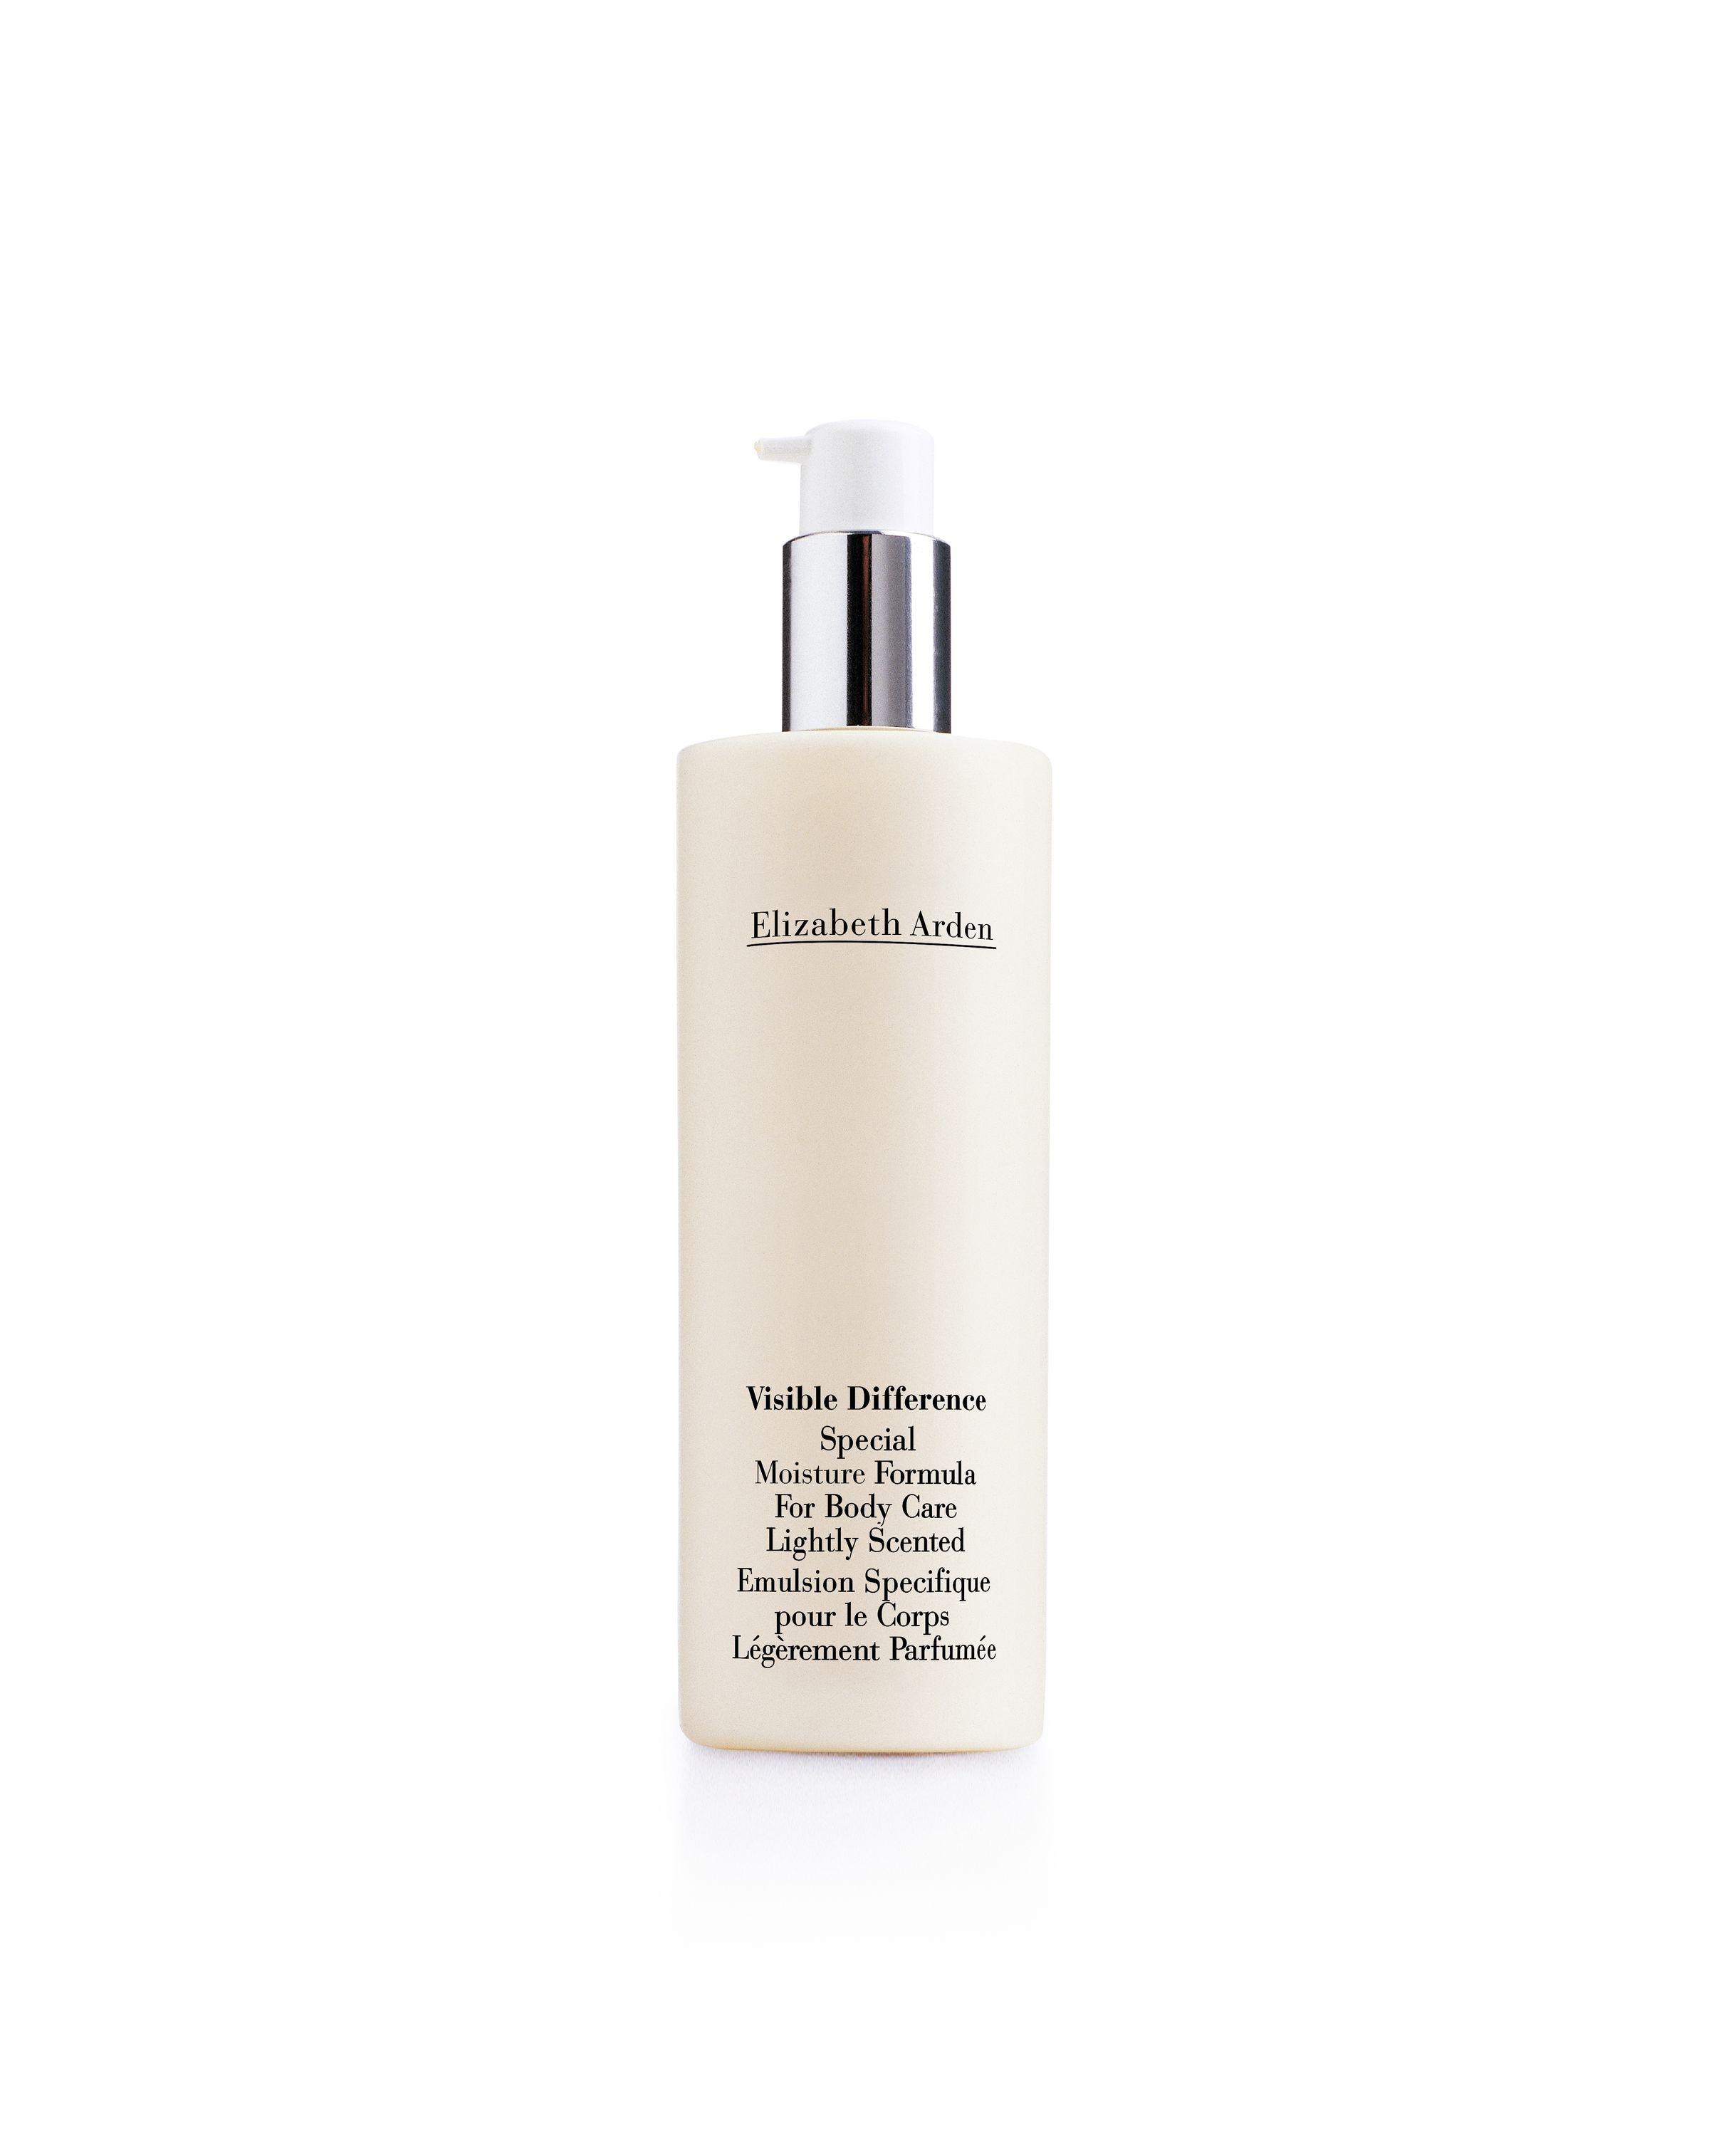 Elizabeth Arden Visible Difference Body Care, 300 ml